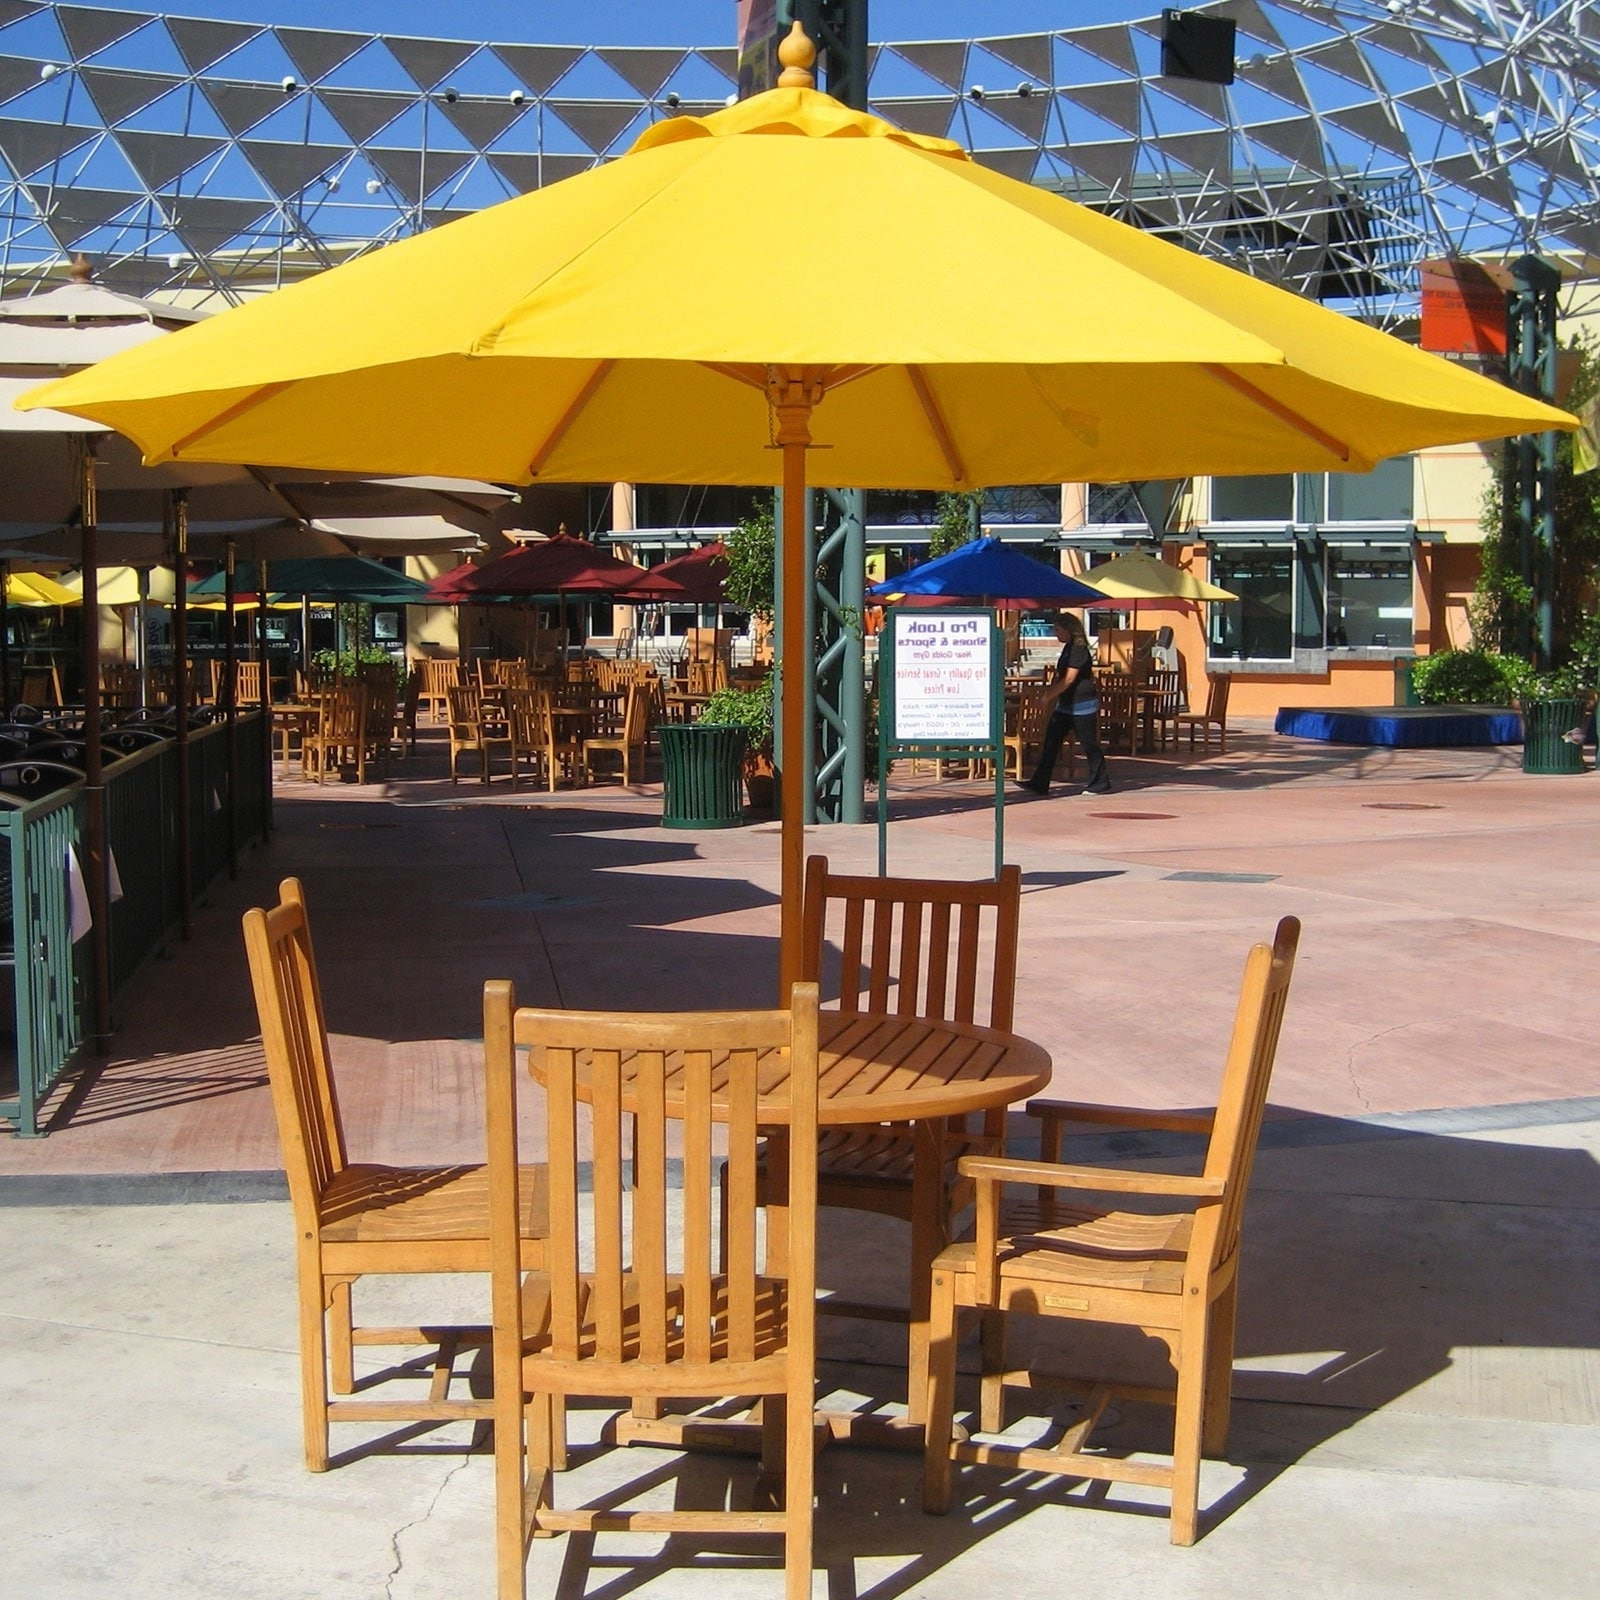 Sherizampelli Landscape : Elegant Within Favorite Cheap Patio Umbrellas (View 18 of 20)